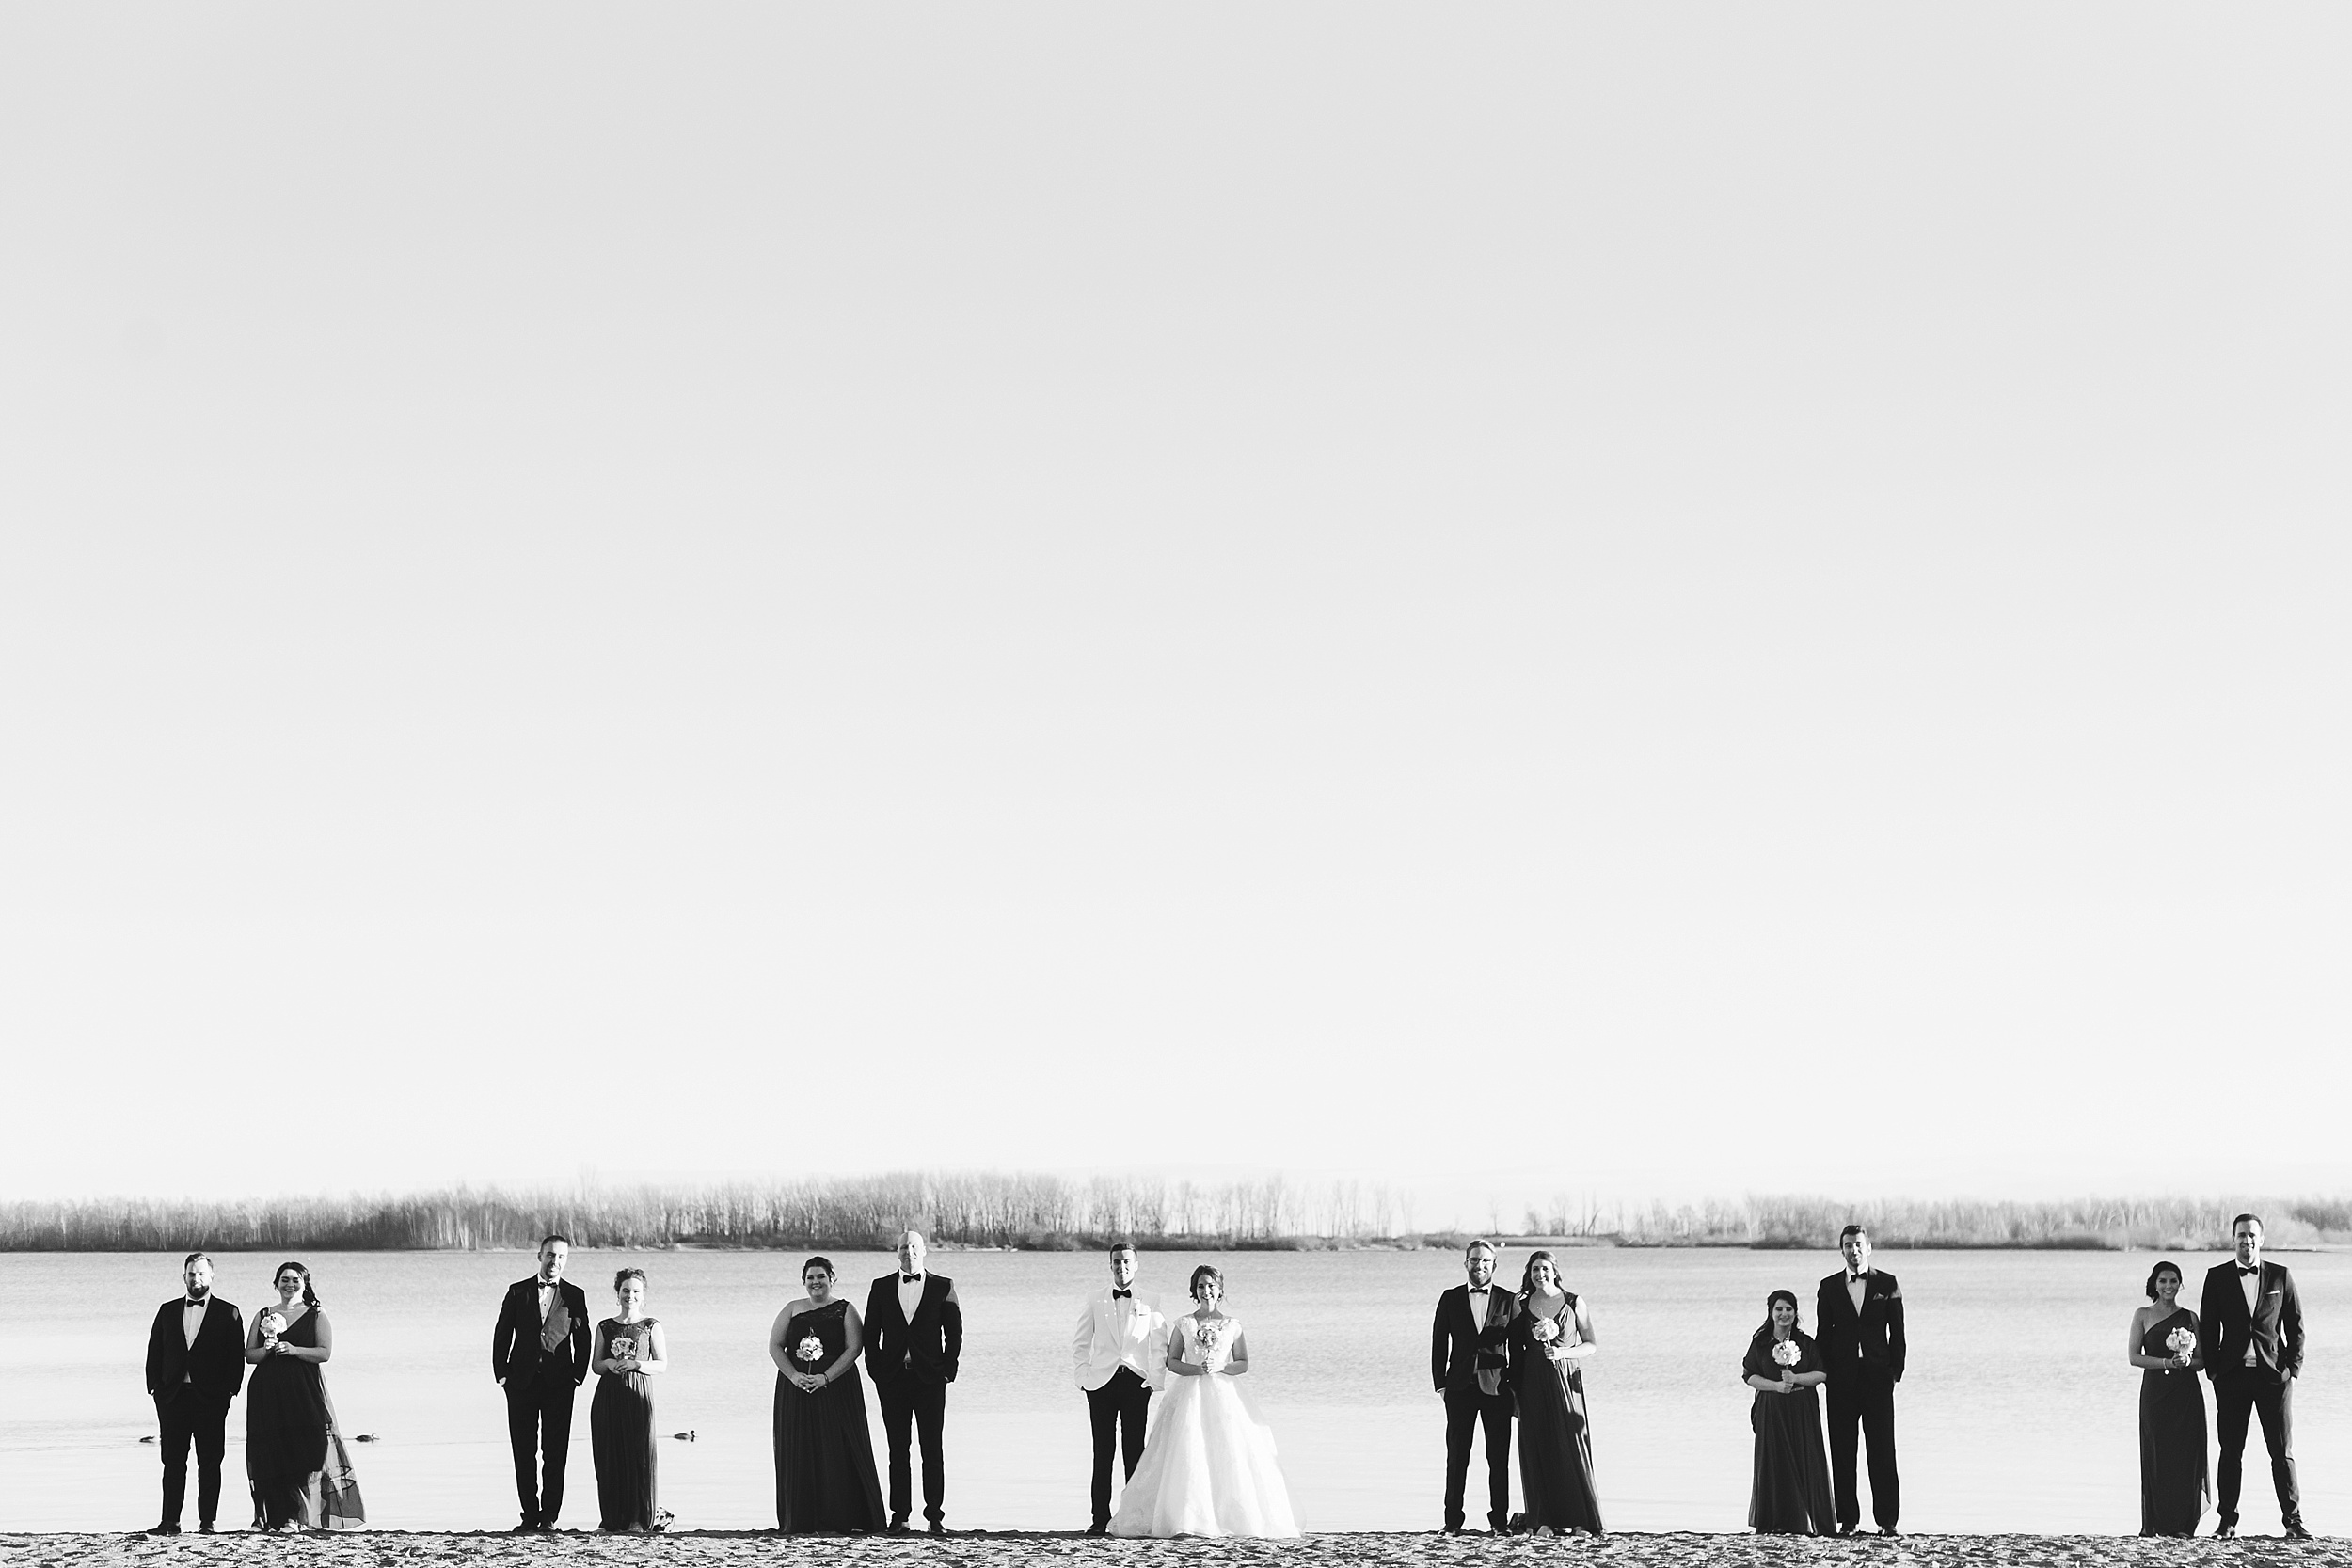 Jam_Factory_Wedding_Toronto_Winter_Wedding_Photographer_0033.jpg